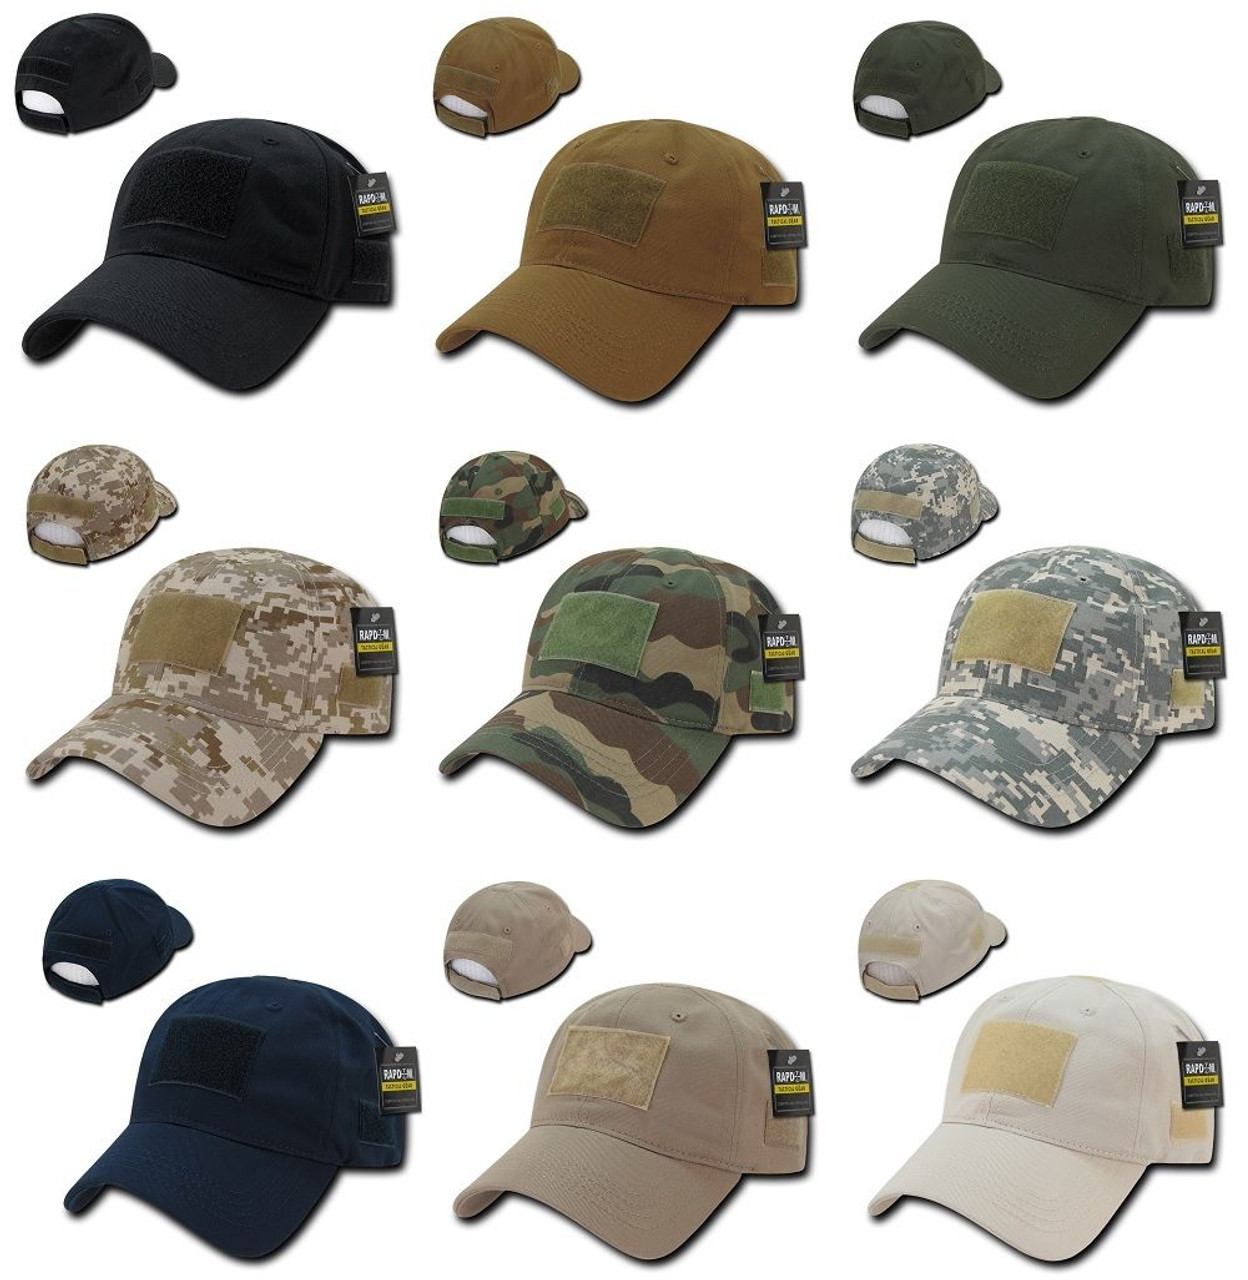 Tactical Operator Structured Contractor Military Patch Baseball Cap Hat 8665449f34a